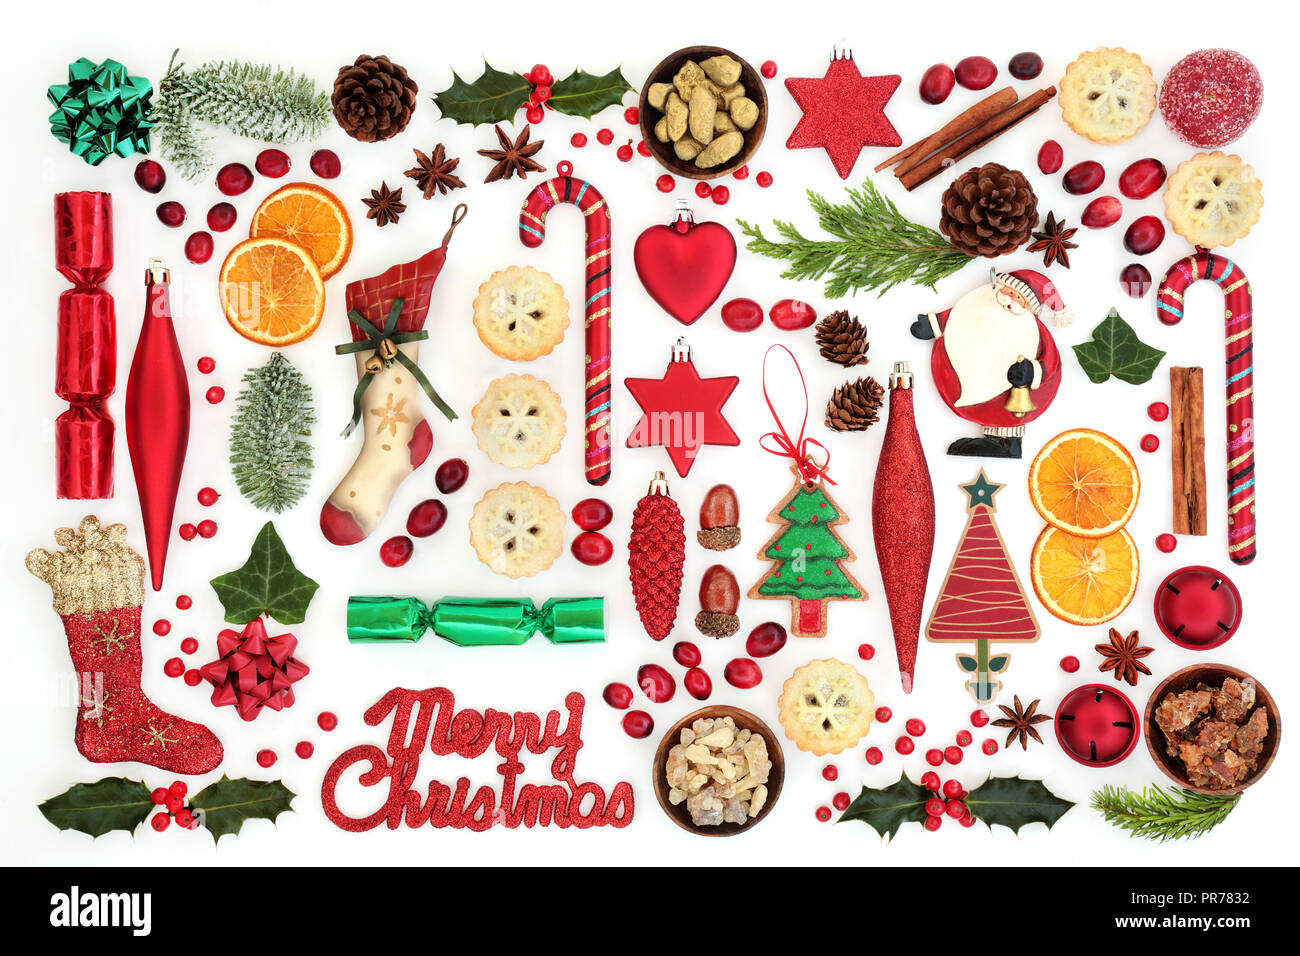 Merry Christmas sign with retro and new tree decorations, food, winter flora, seasonal symbols and gold, frankincense and myrrh. - Stock Image